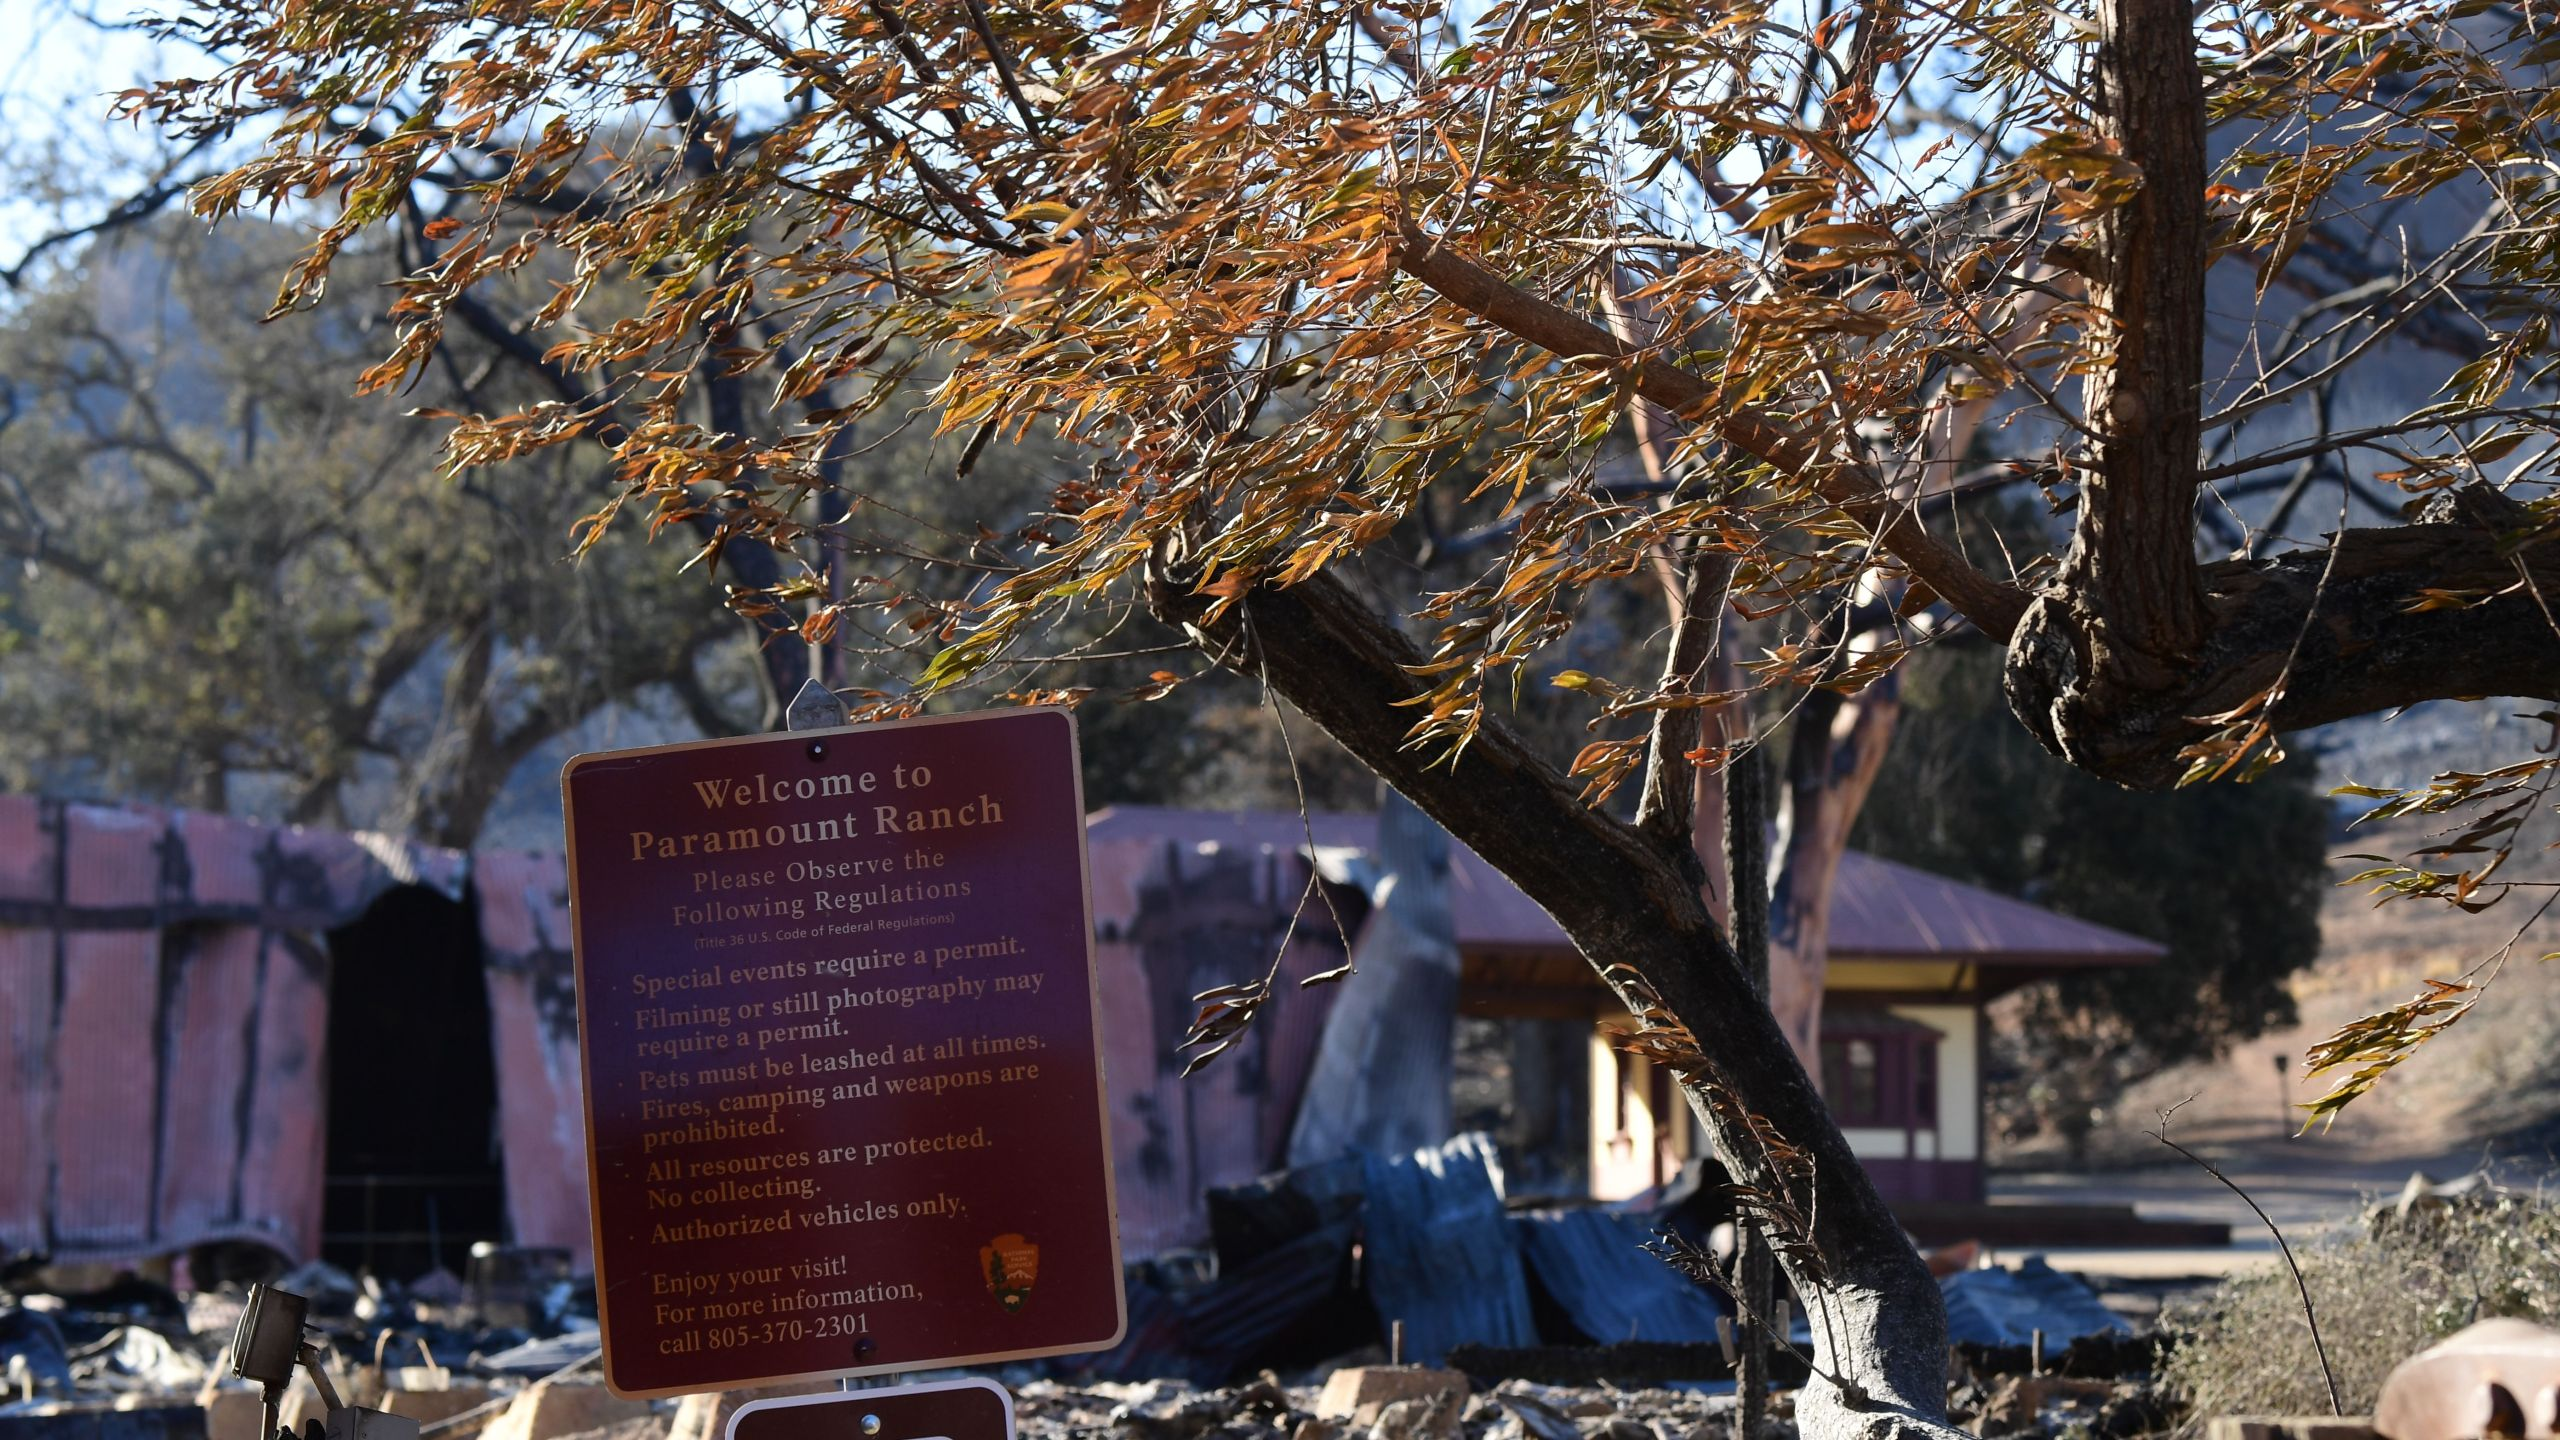 """Paramount Ranch in the Santa Monica Mountains, where the TV show """"Westworld"""" and hundreds of other Hollywood productions were filmed, is seen after the Woolsey fire, Nov. 12, 2018. (Credit: Robyn Beck / AFP / Getty Images)"""